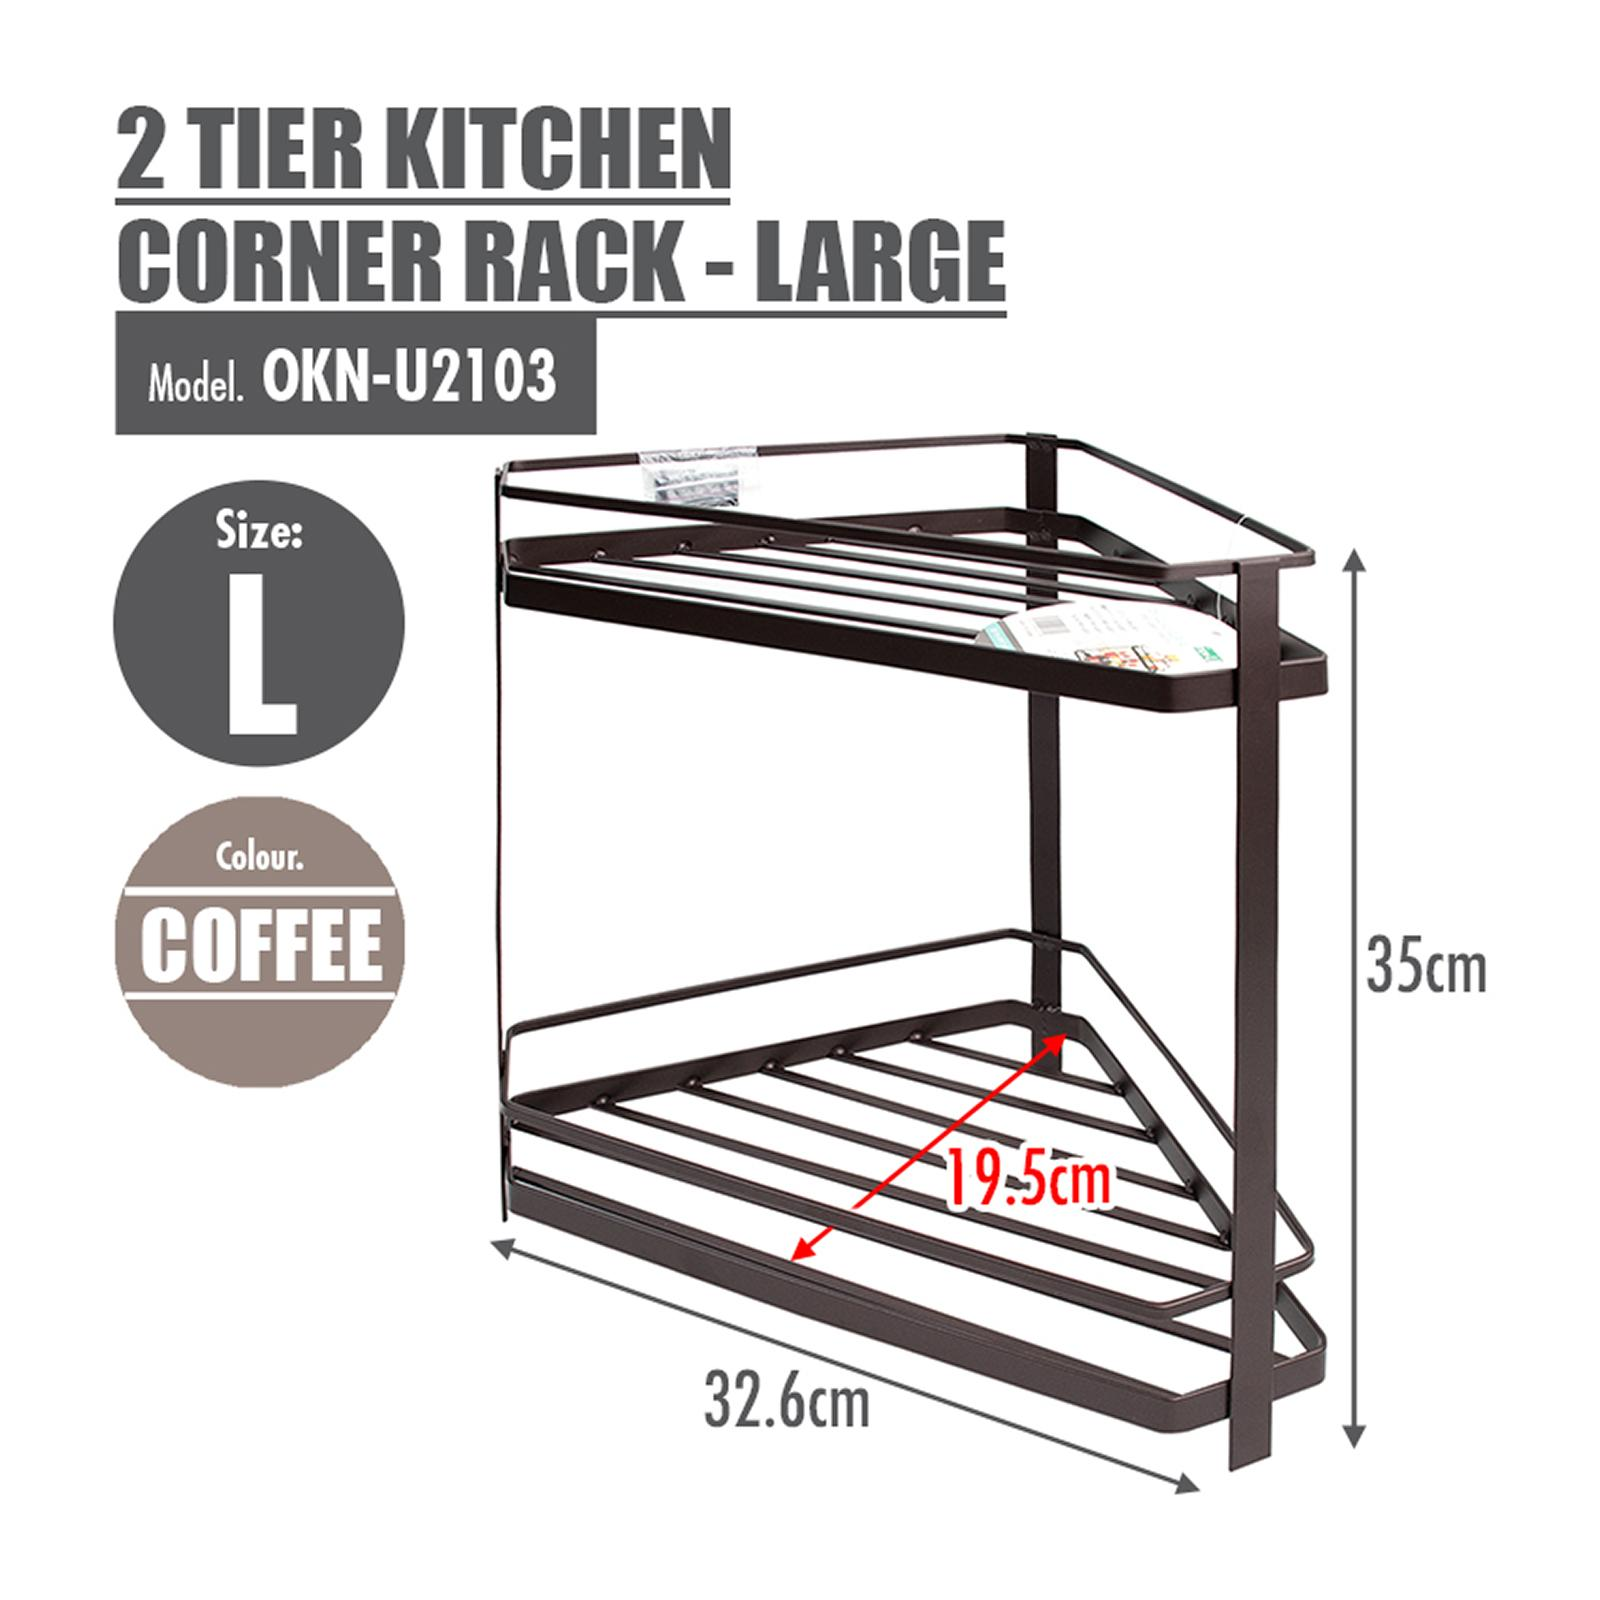 HOUZE 2 Tier Kitchen Corner Rack - Large